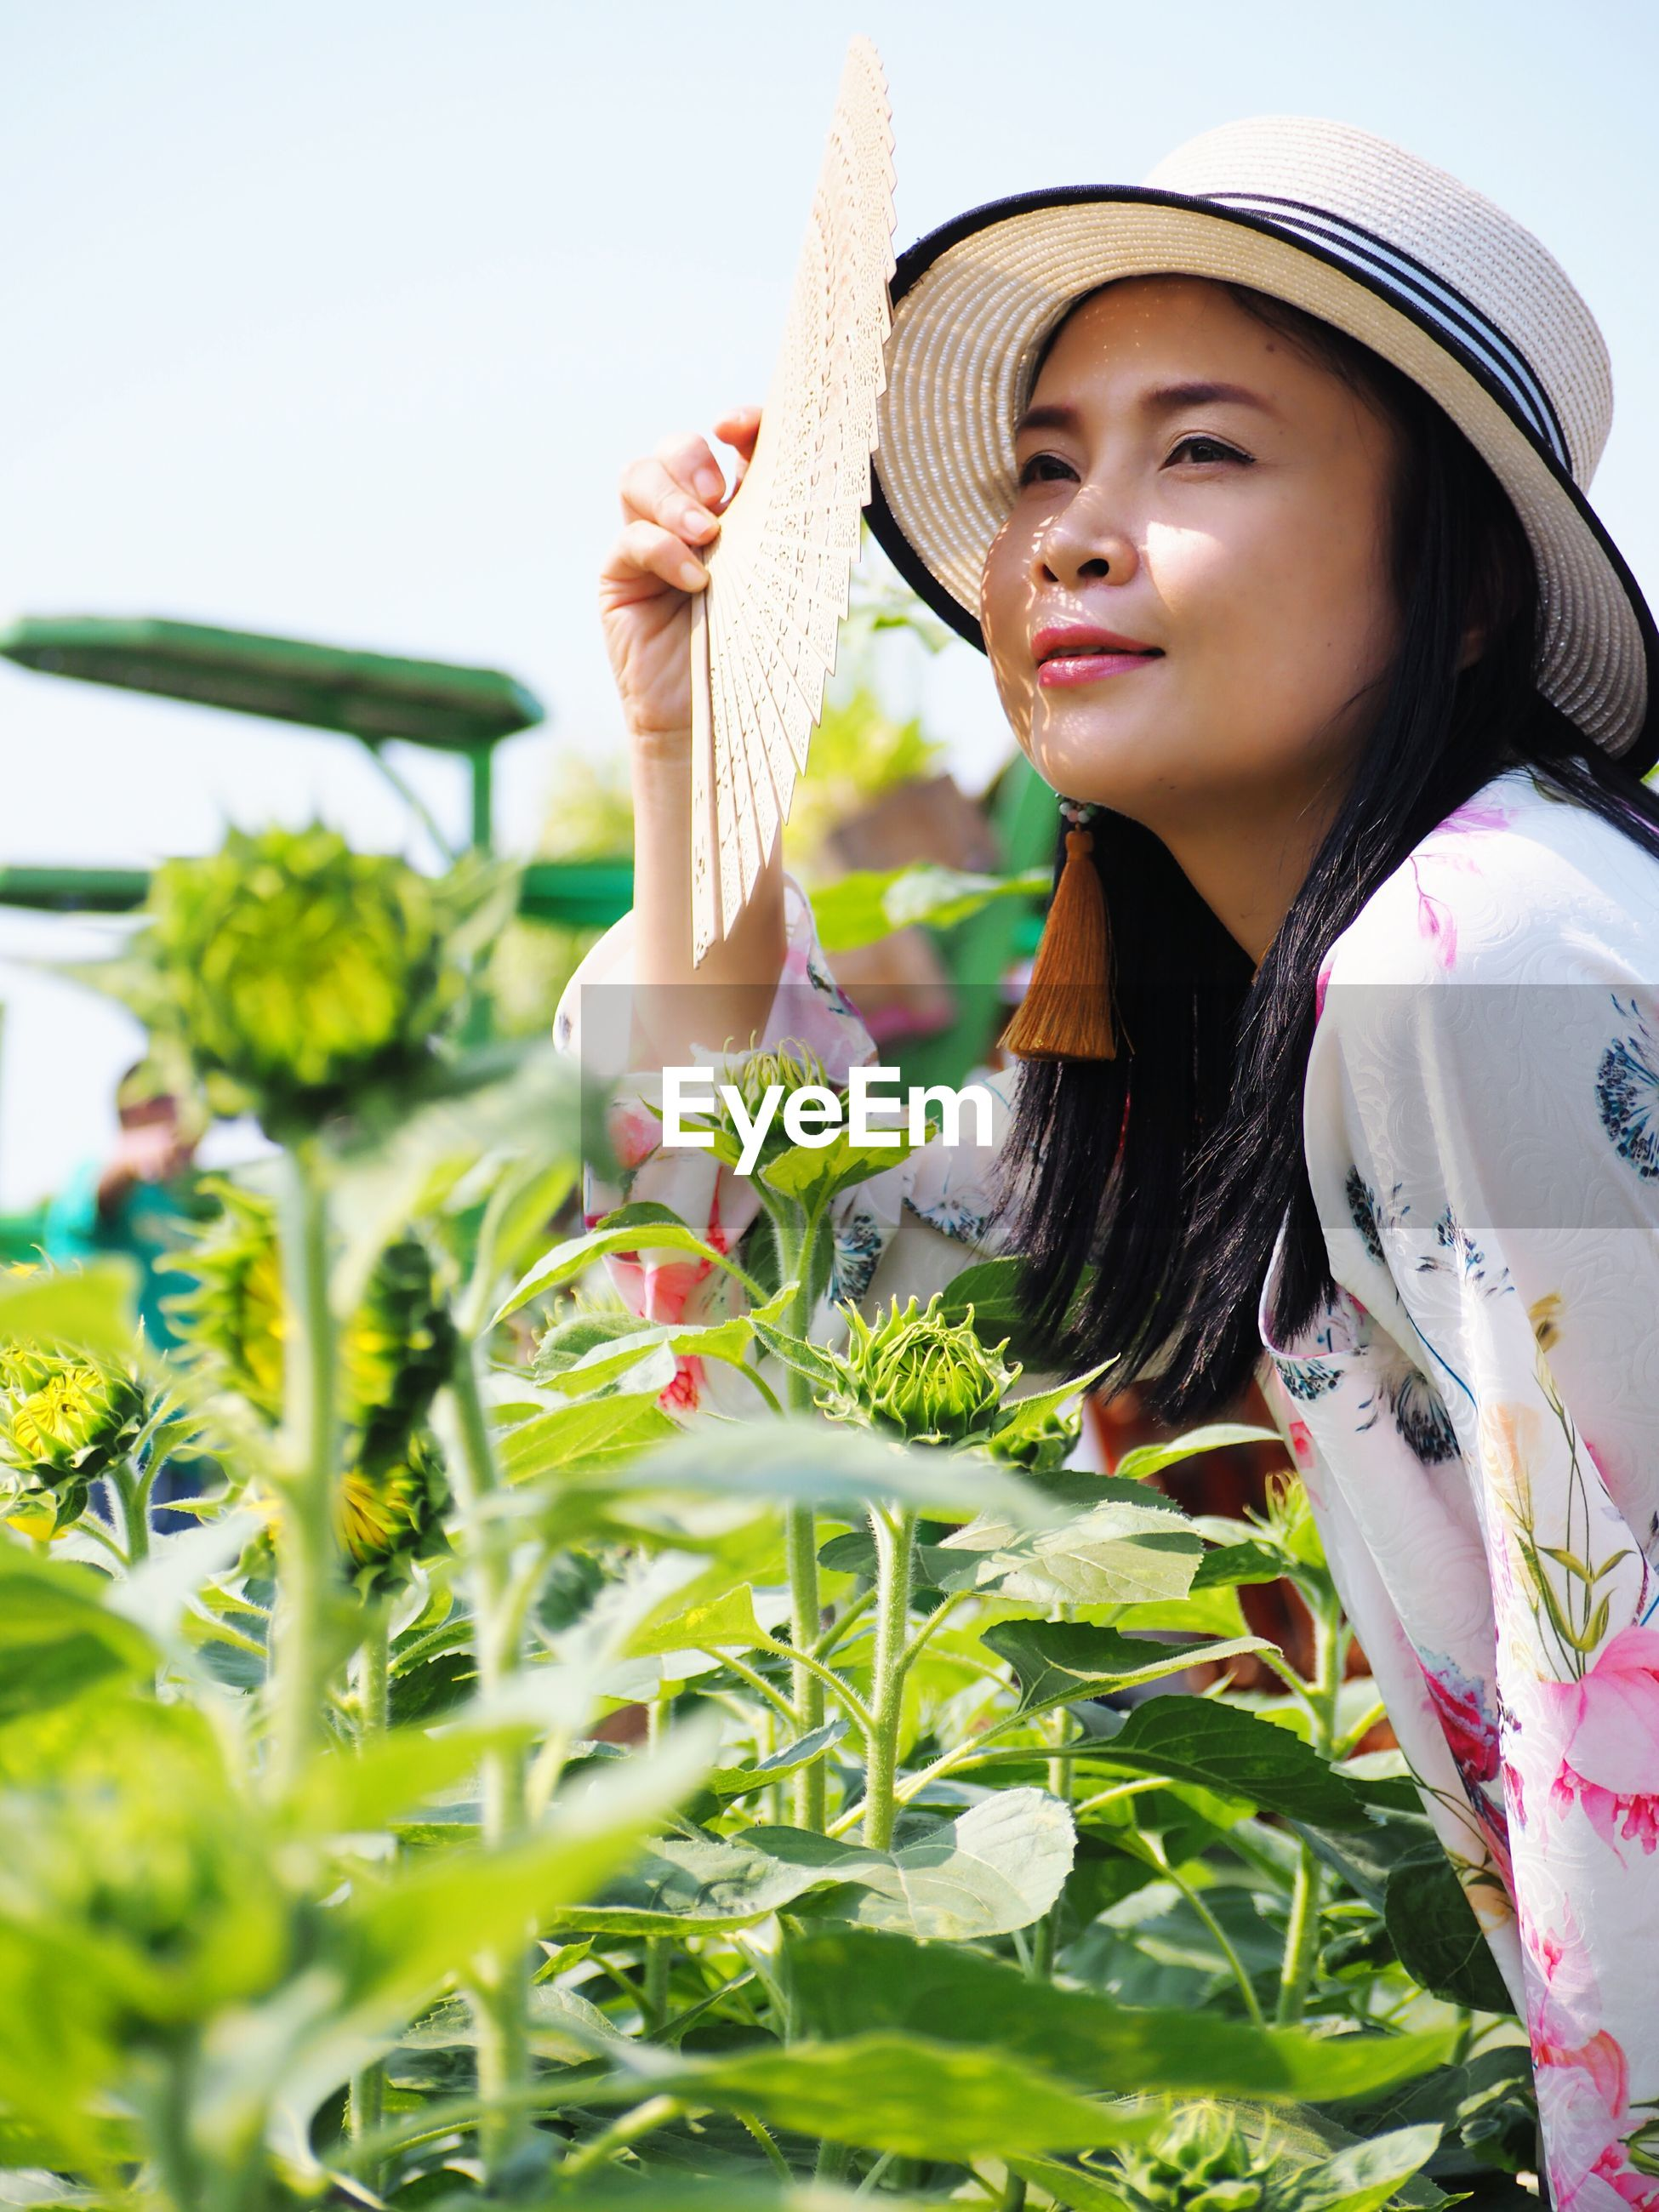 Smiling woman holding hand fan by plants